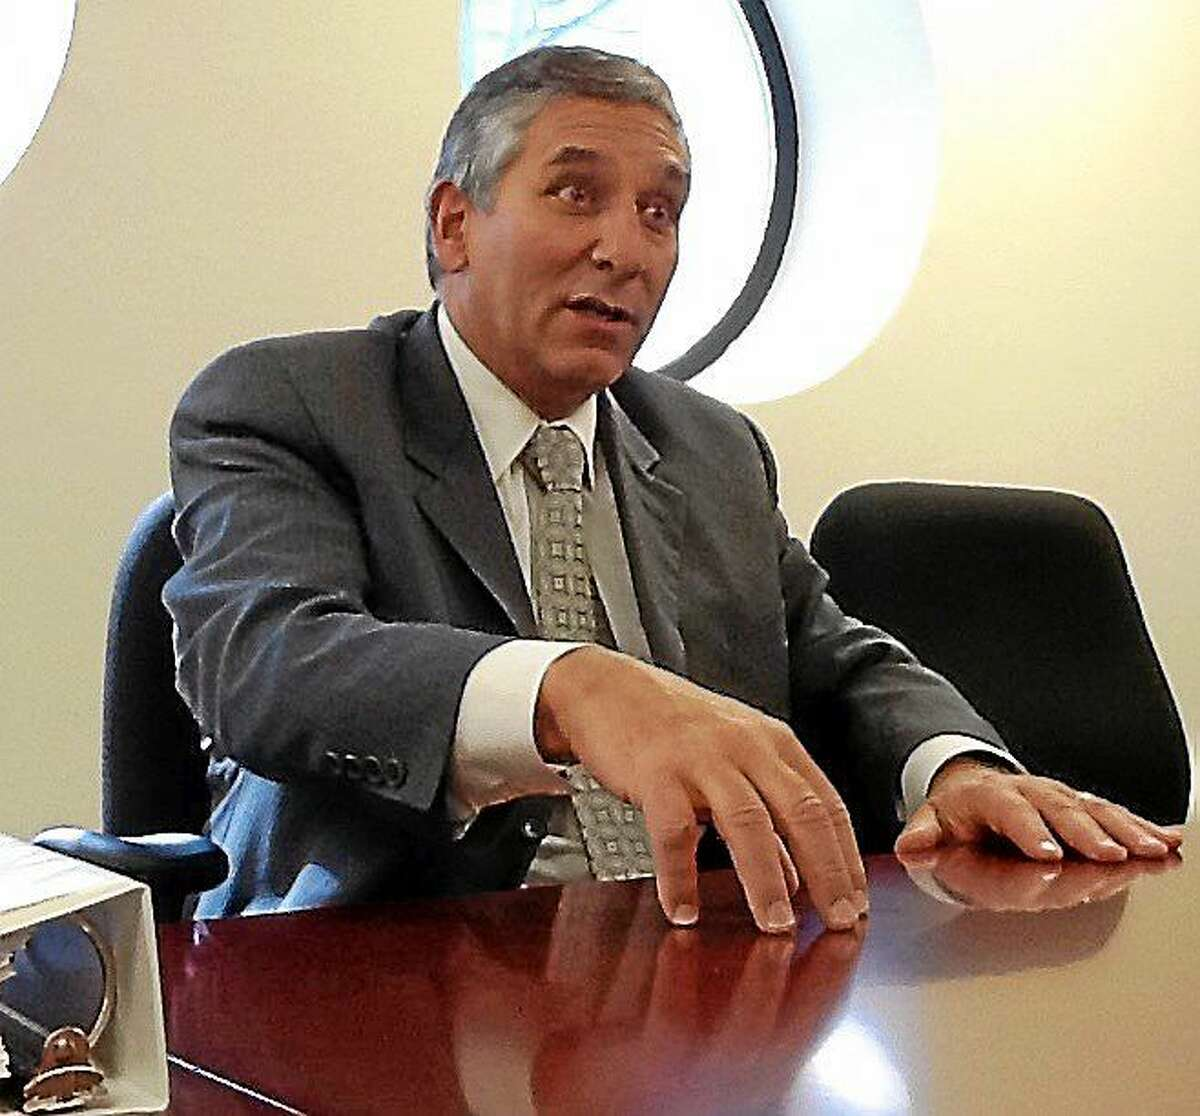 State Senate Minority Leader Len Fasano makes a point while speaking to the New Haven Register Editorial Board